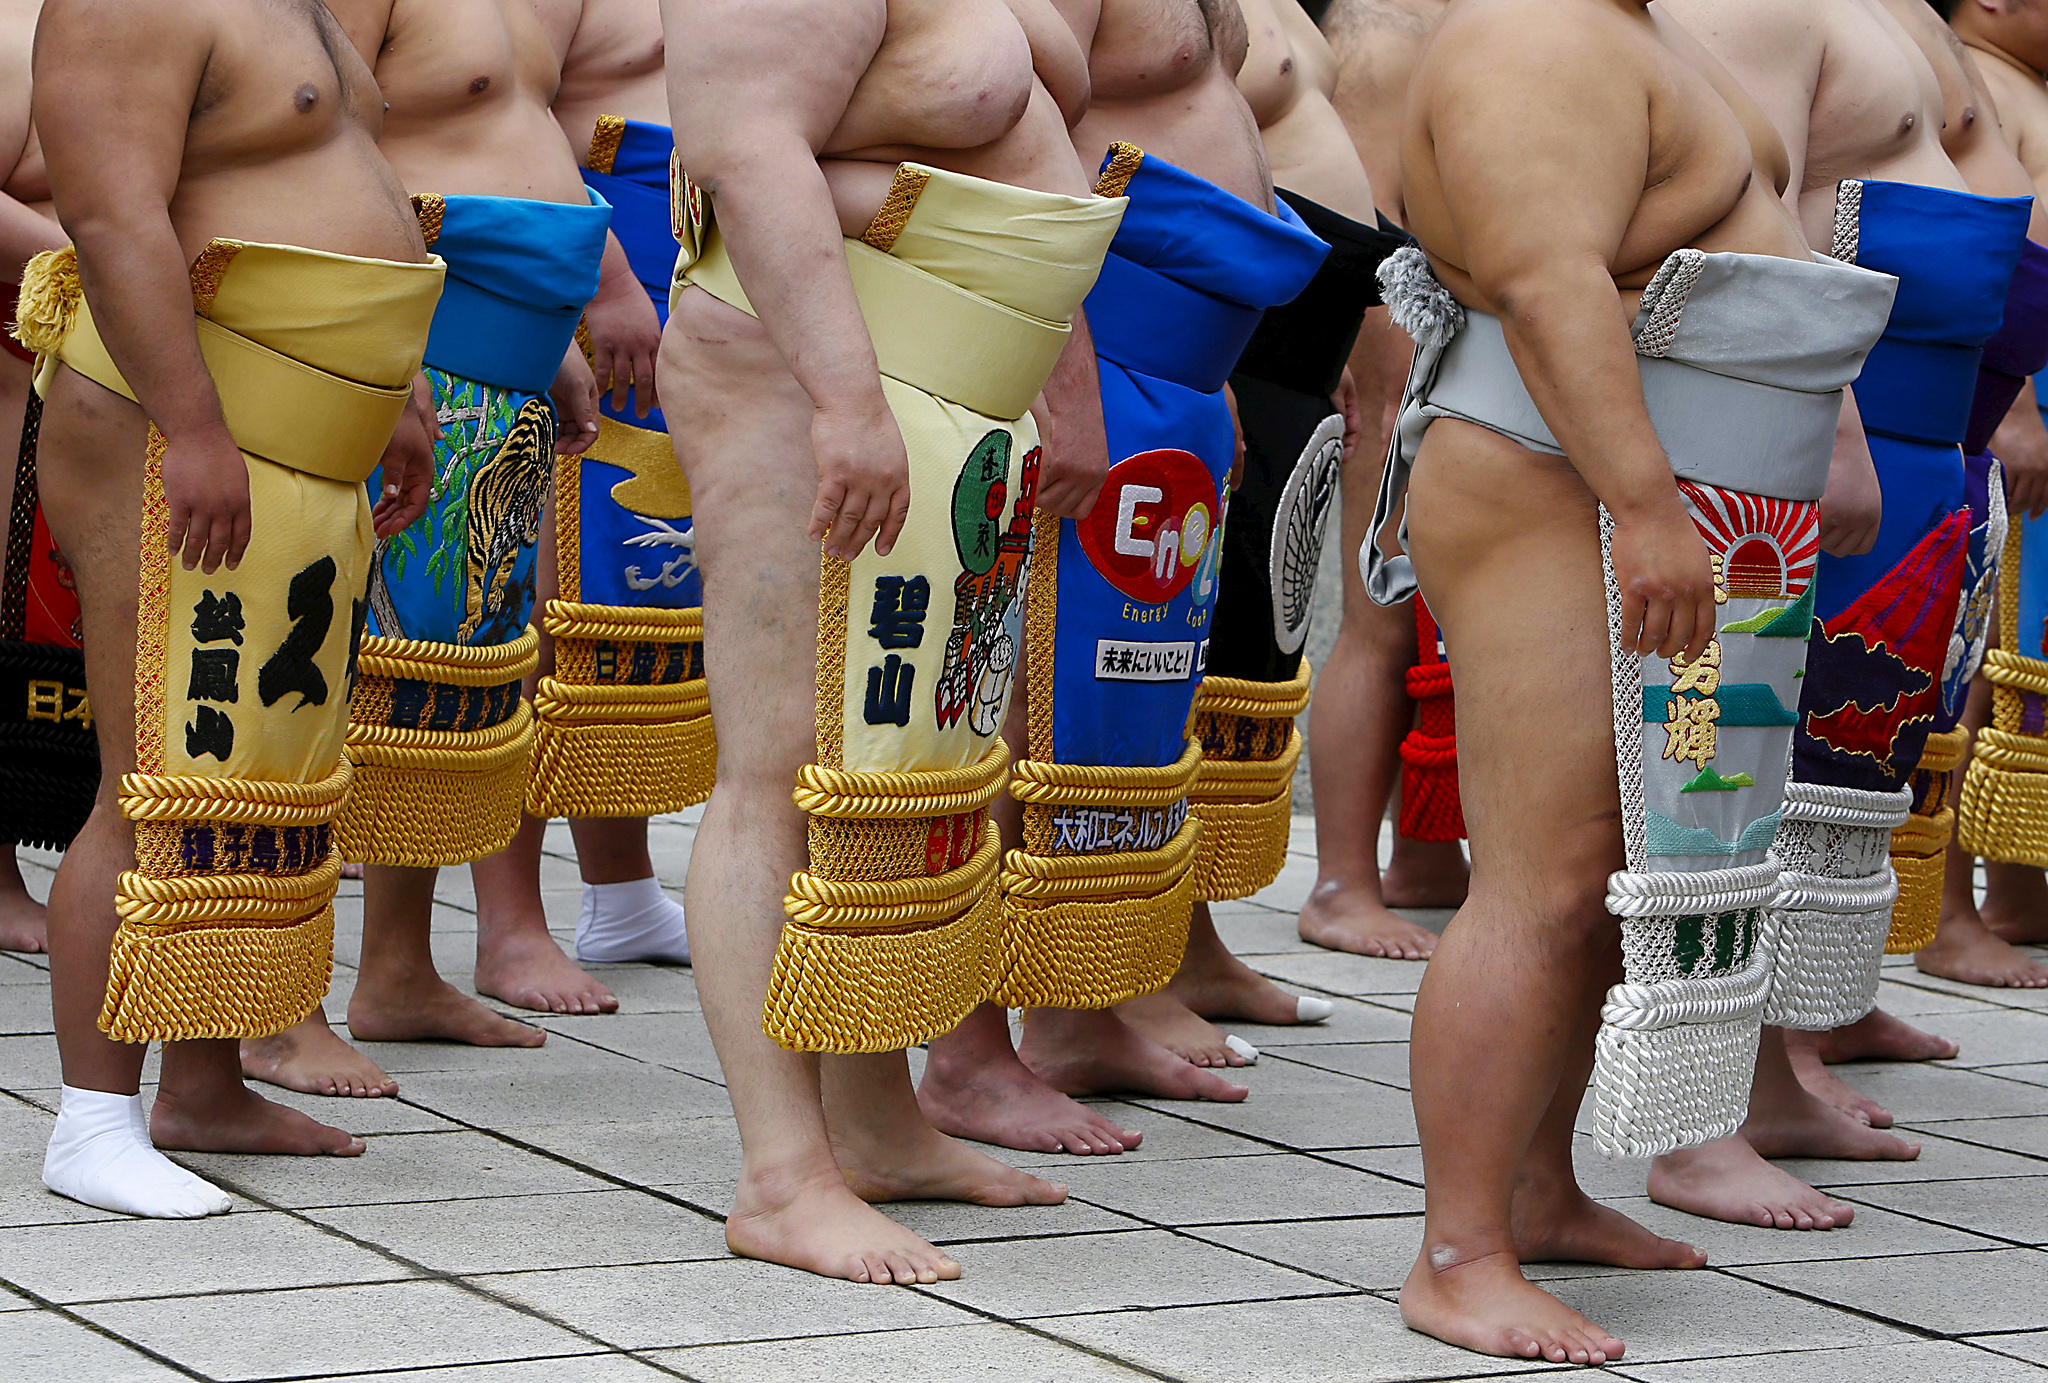 "Sumo wrestlers line up as they pray before the start of the annual 'Honozumo' ceremonial sumo tournament dedicated to the Yasukuni Shrine in Tokyo, Japan...Sumo wrestlers line up as they pray before the start of the annual 'Honozumo' ceremonial sumo tournament dedicated to the Yasukuni Shrine in Tokyo, Japan, April 18, 2016.  REUTERS/Yuya Shino SEARCH ""SHINO SUMO"" TO SEE ALL THE PICTURES."